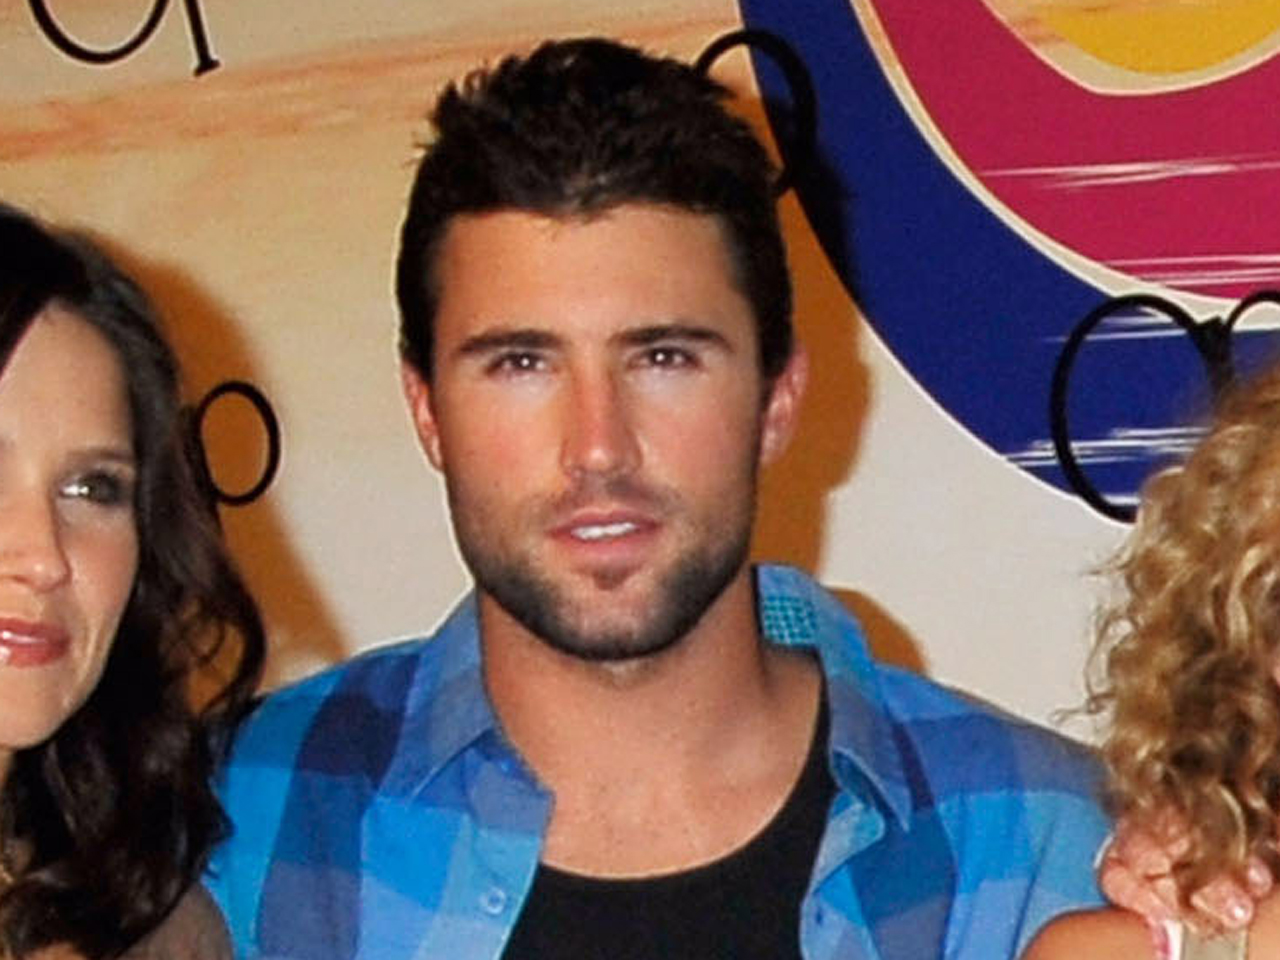 39 keeping up with the kardashians 39 welcomes brody jenner to for Old keeping up with the kardashians episodes